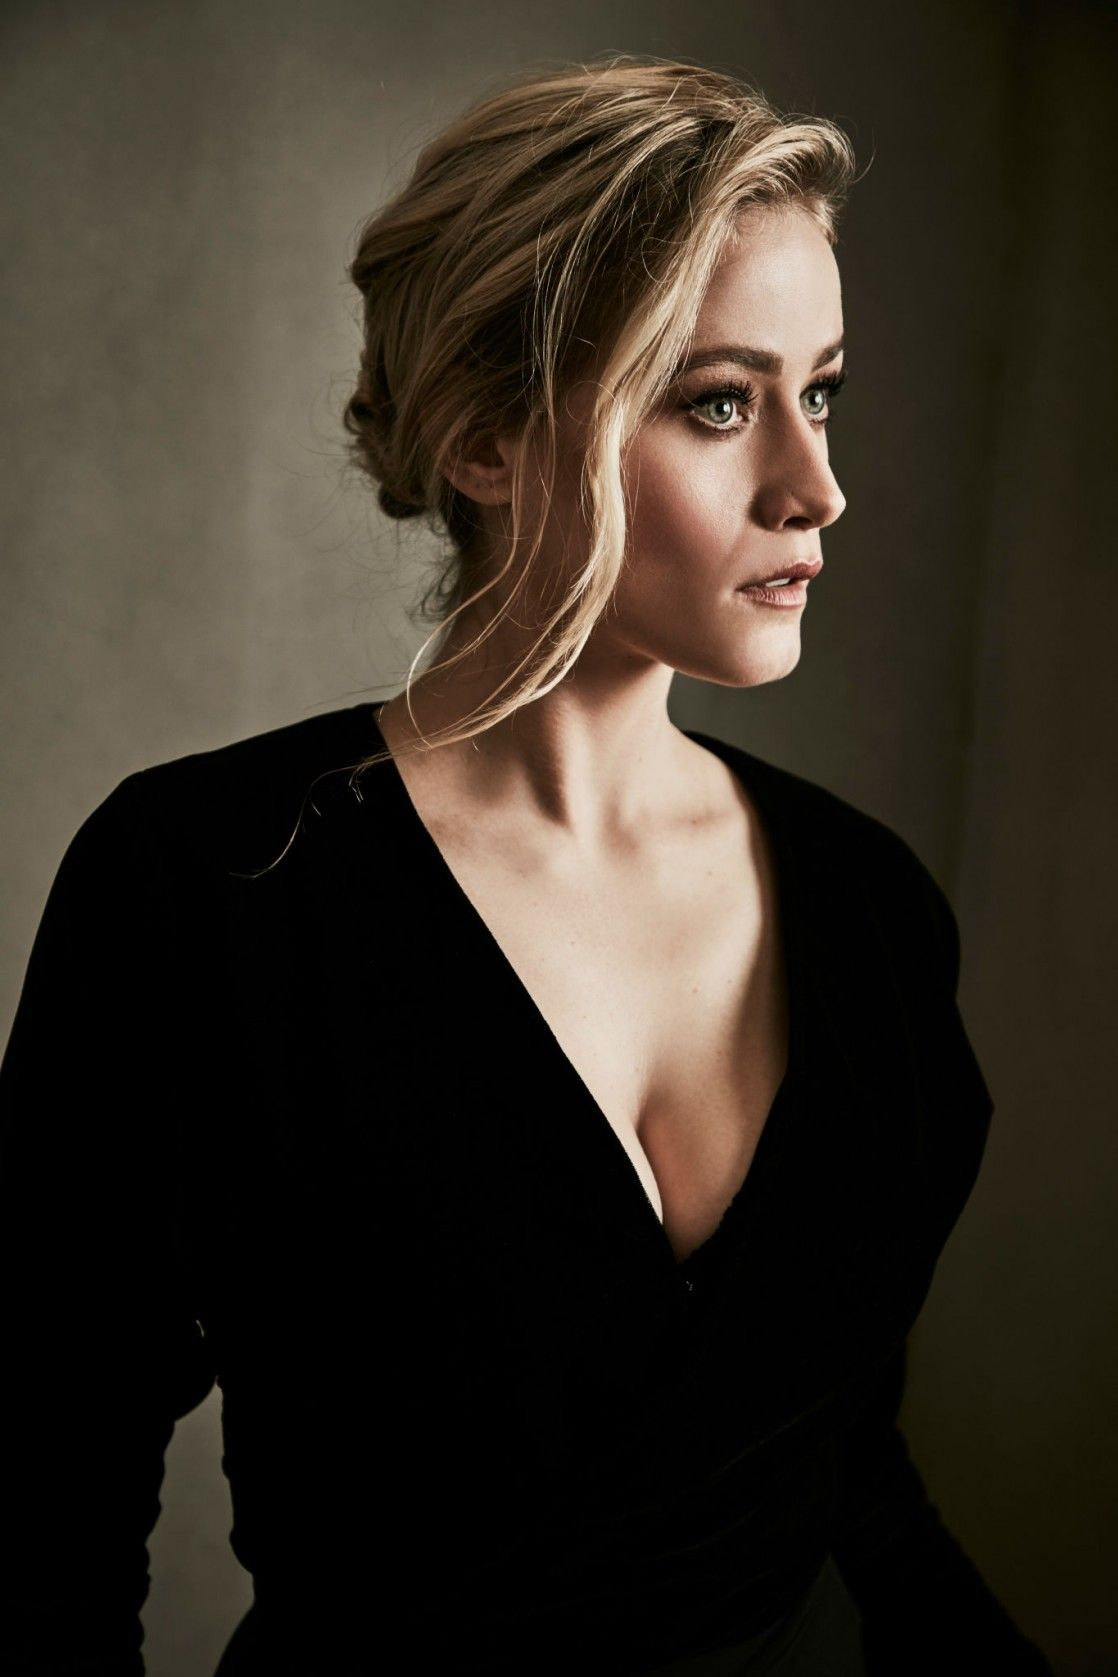 Olivia Taylor Dudley Net worth 2020, Bio, Career, Relationship, and Instagram.